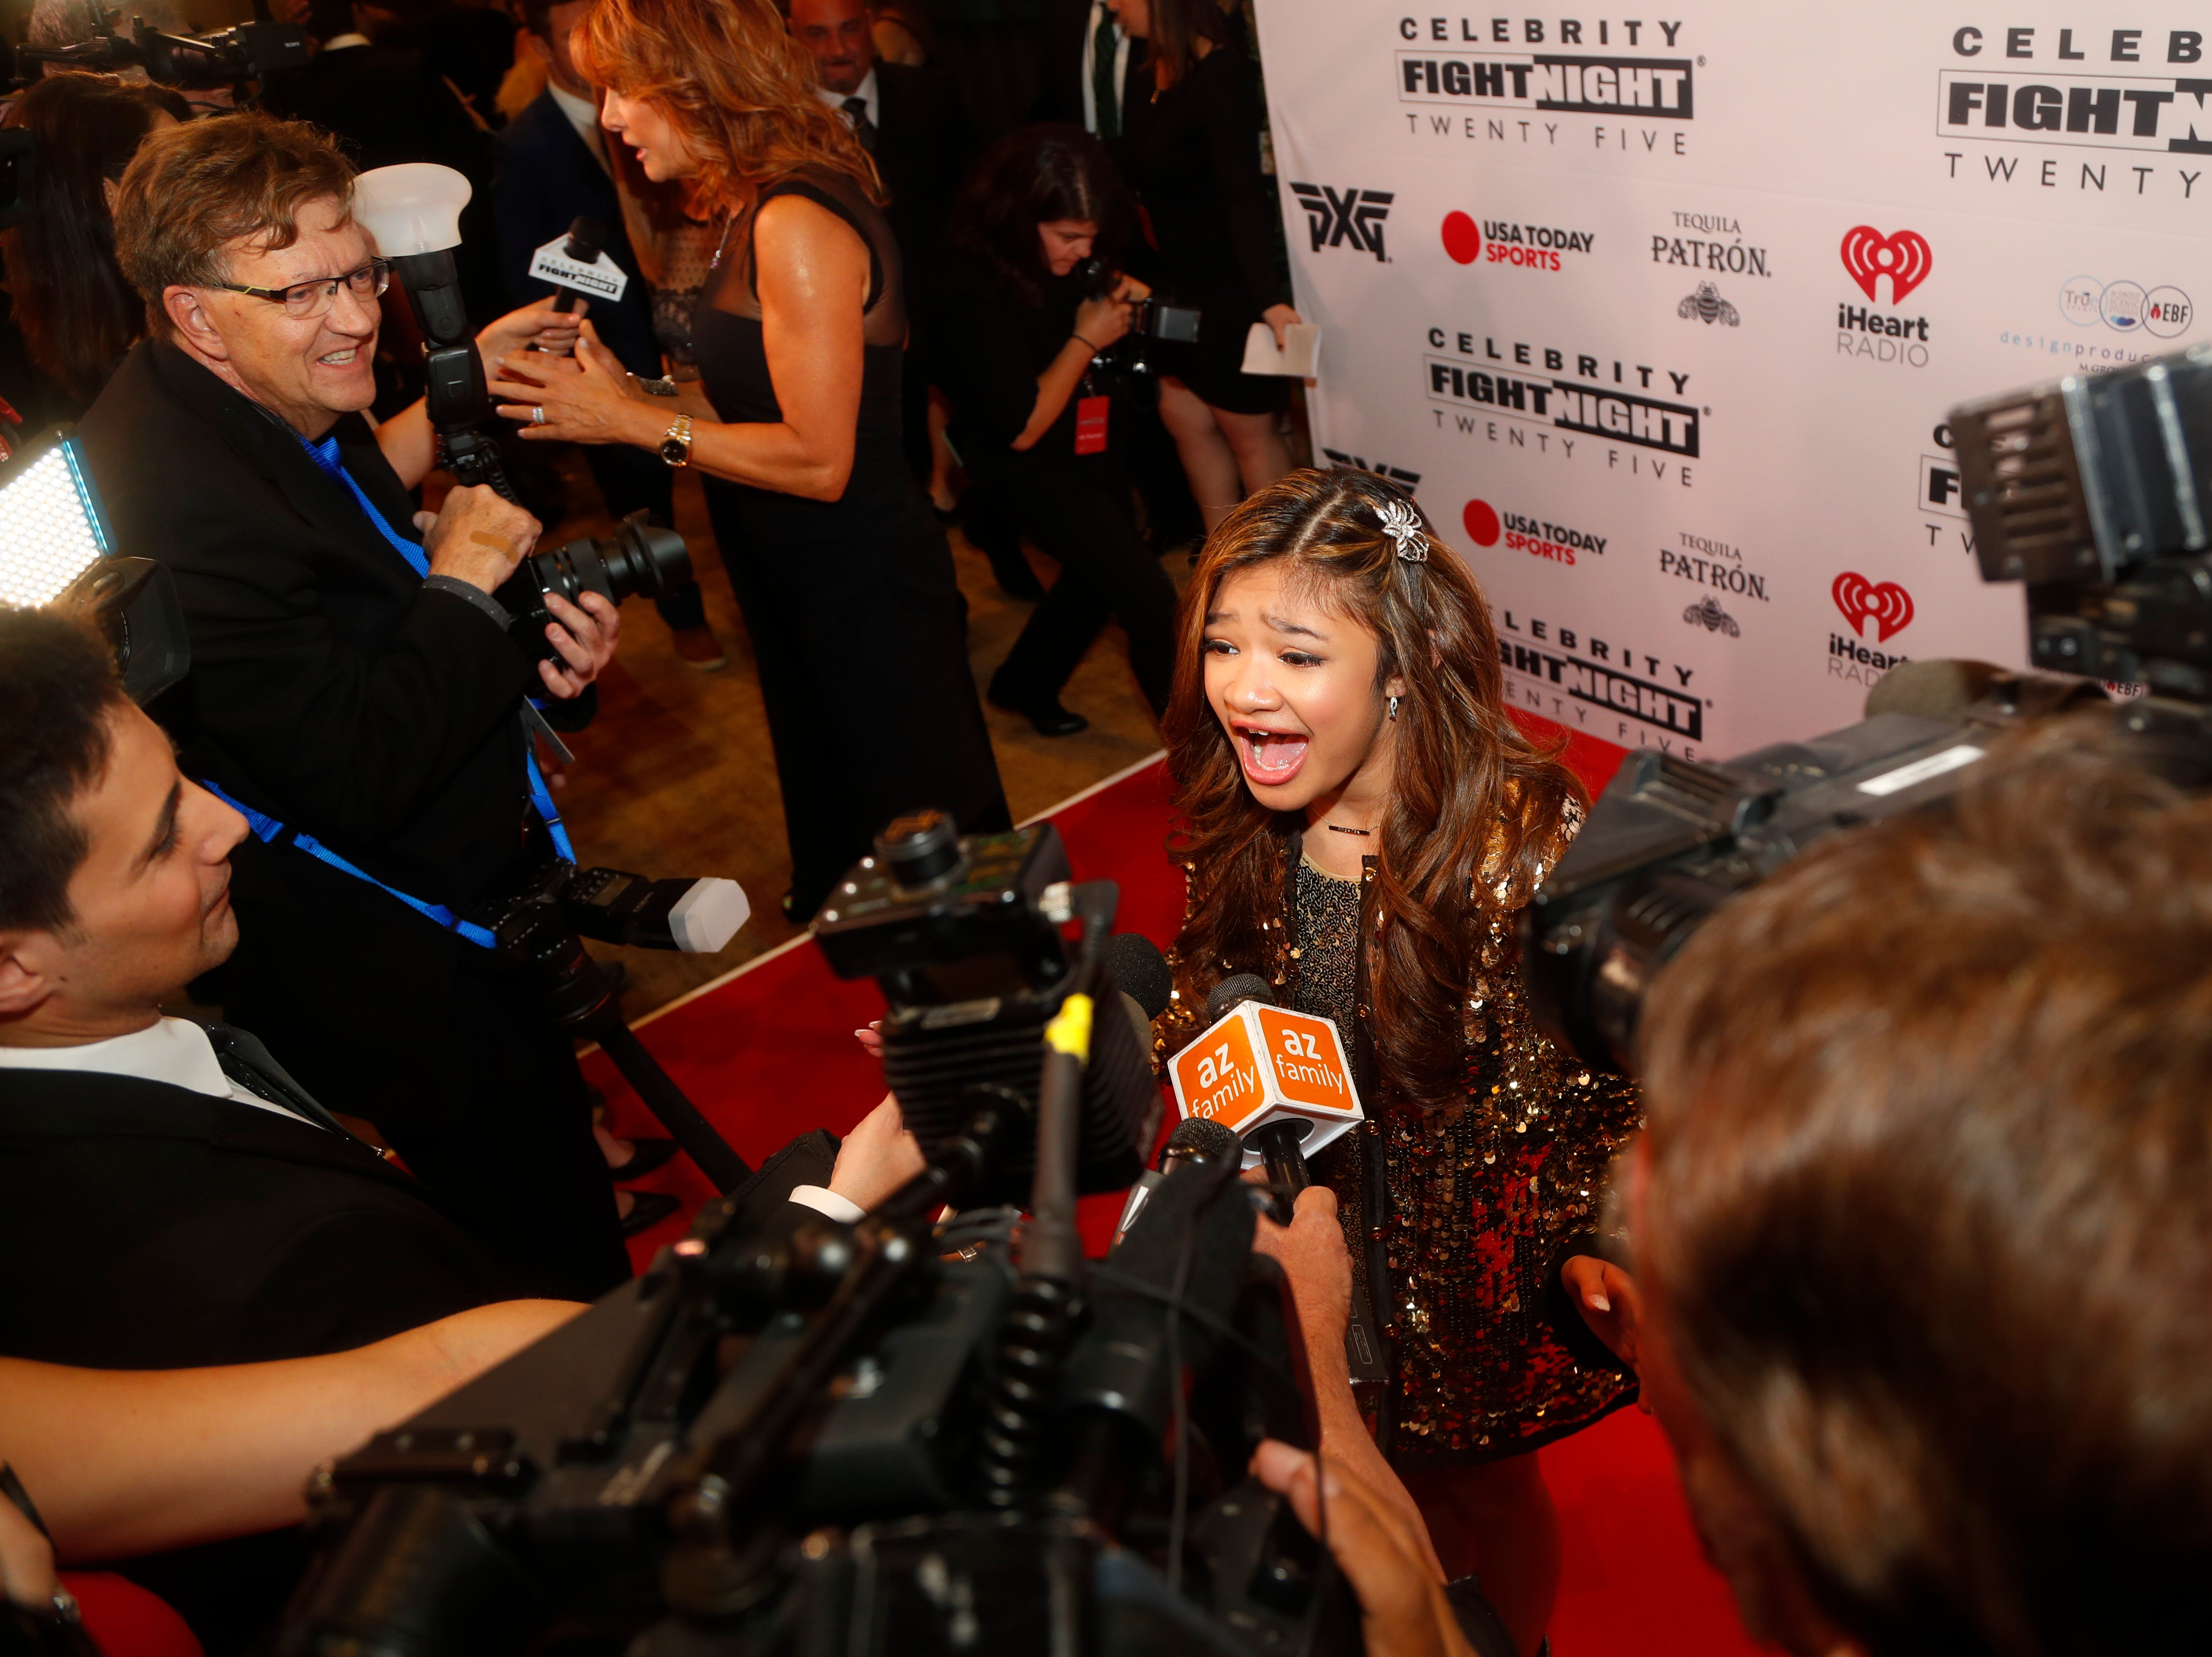 Angelica Hale sings in an interview during the Celebrity Fight Night red carpet in Scottsdale, Ariz., on March 23, 2019.